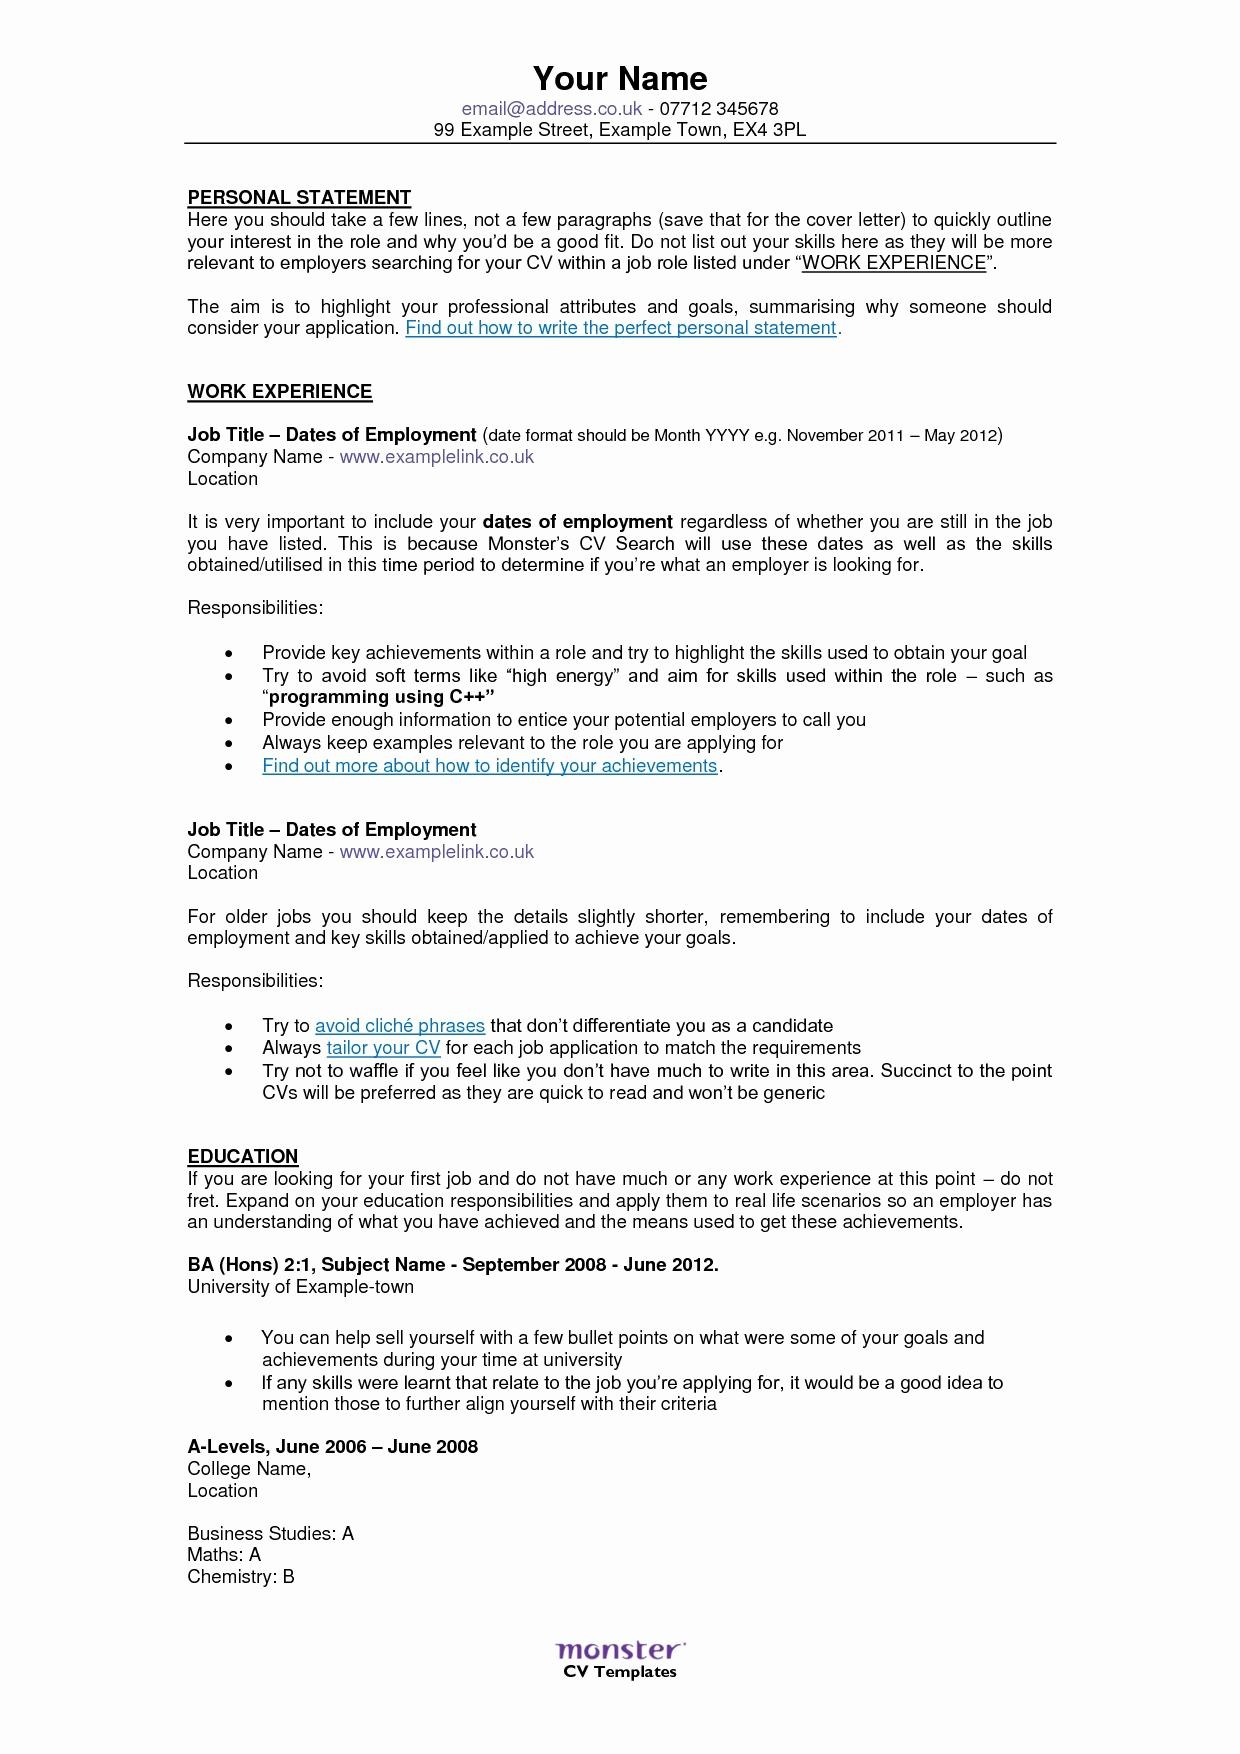 Employer Name Example - Help Desk Cover Letter Template Examples